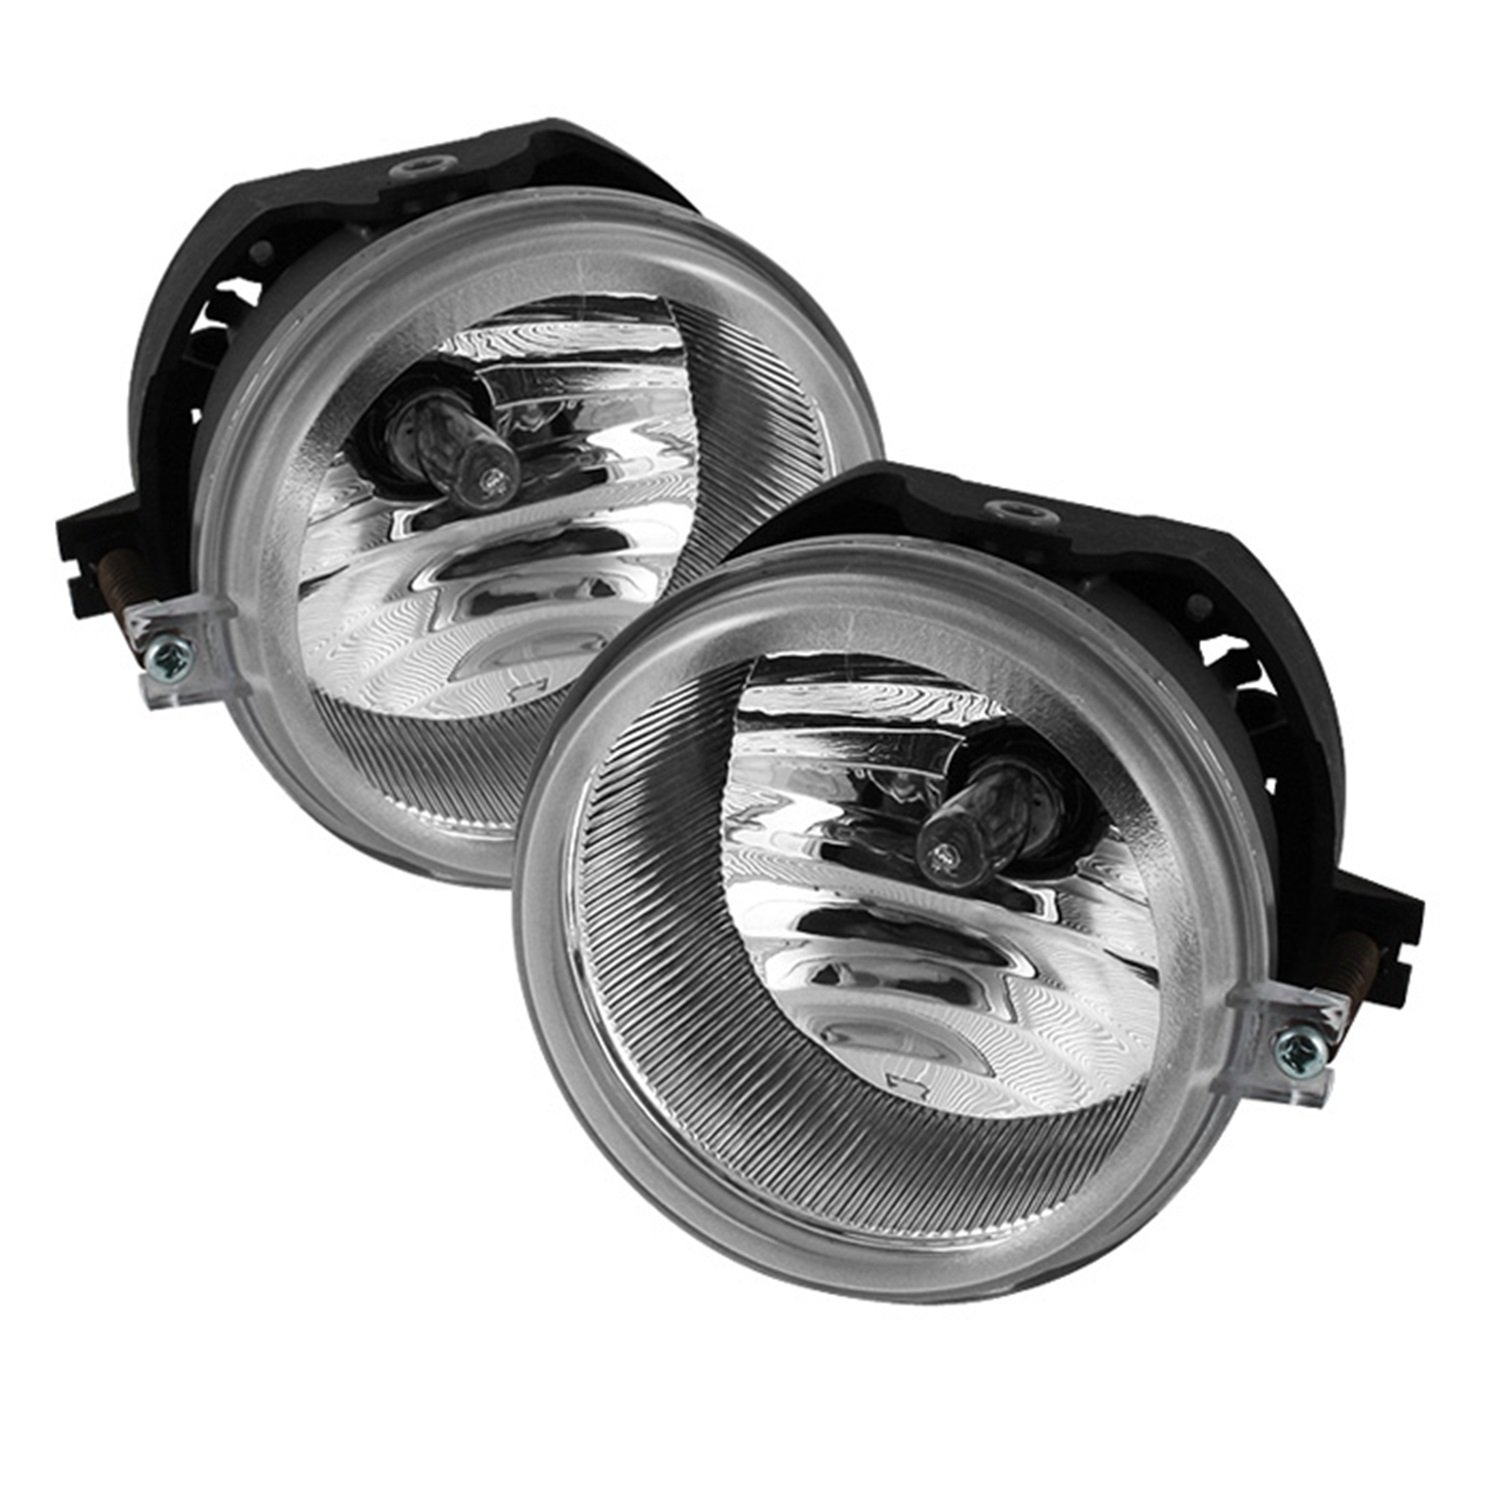 Amazon.com: Spyder Auto FL-DCH05-SM Dodge Smoke OEM Fog Light: Automotive